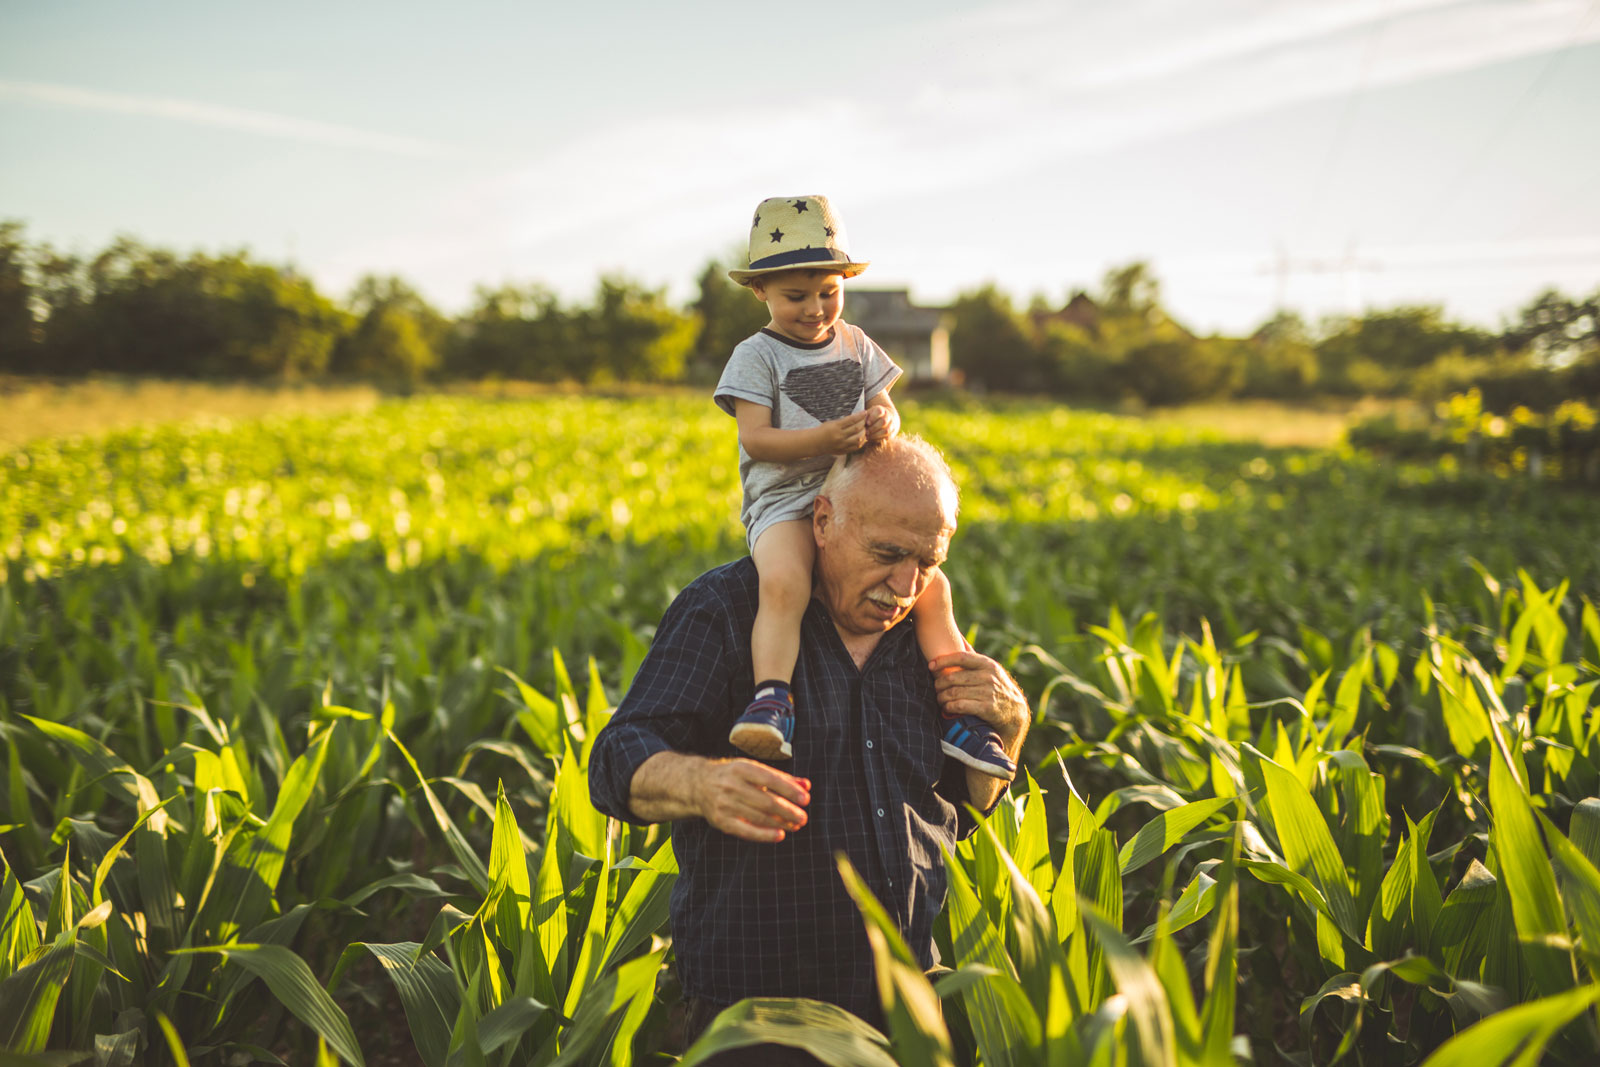 Grandfather carrying grandson on his shoulders in a corn field